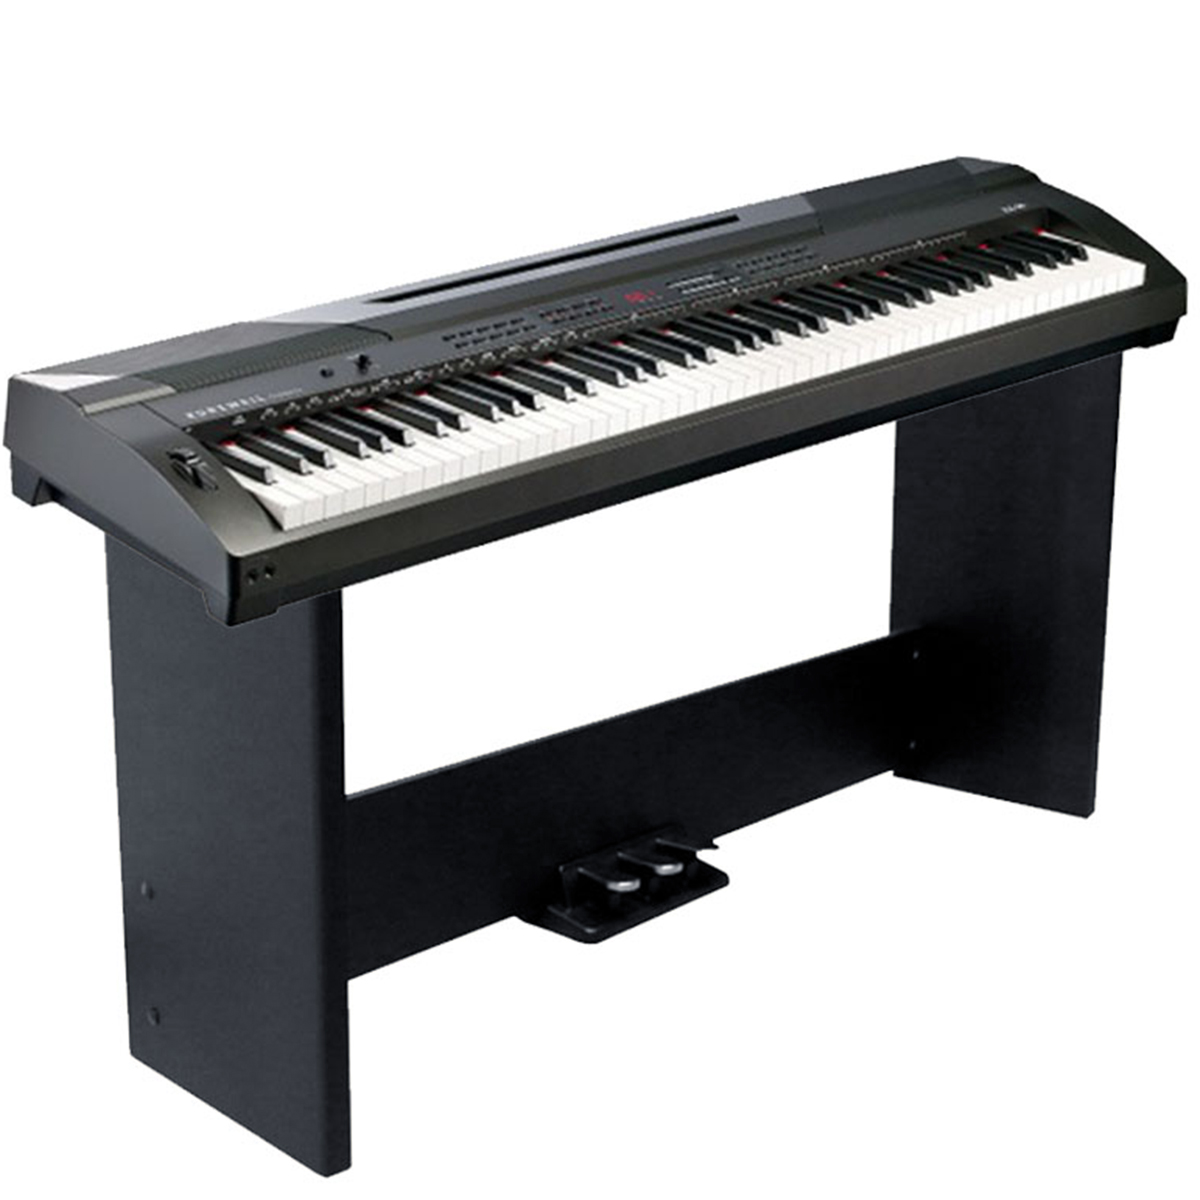 KURZWEIL KA90LB: Arranger Stage Piano With 88 Fully-Weighted Keys (Black)